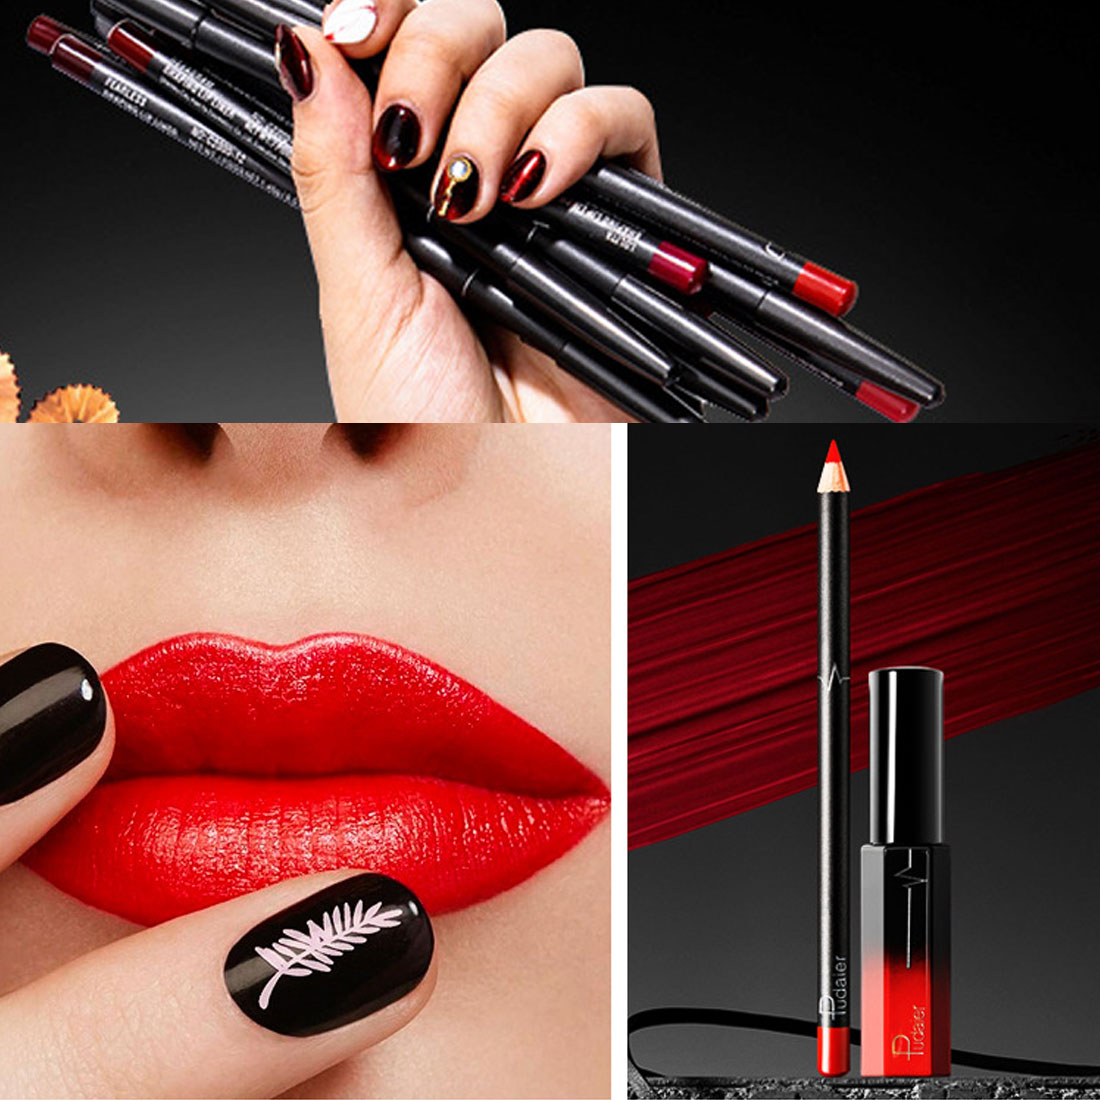 Waterproof Lasting <font><b>Lipstick</b></font> Liner <font><b>Lip</b></font> Color Combination <font><b>Matte</b></font> Liquid <font><b>Lip</b></font> <font><b>Gloss</b></font> <font><b>Cosmetic</b></font> <font><b>Lipstick</b></font> <font><b>Set</b></font> Nude <font><b>Lip</b></font> image